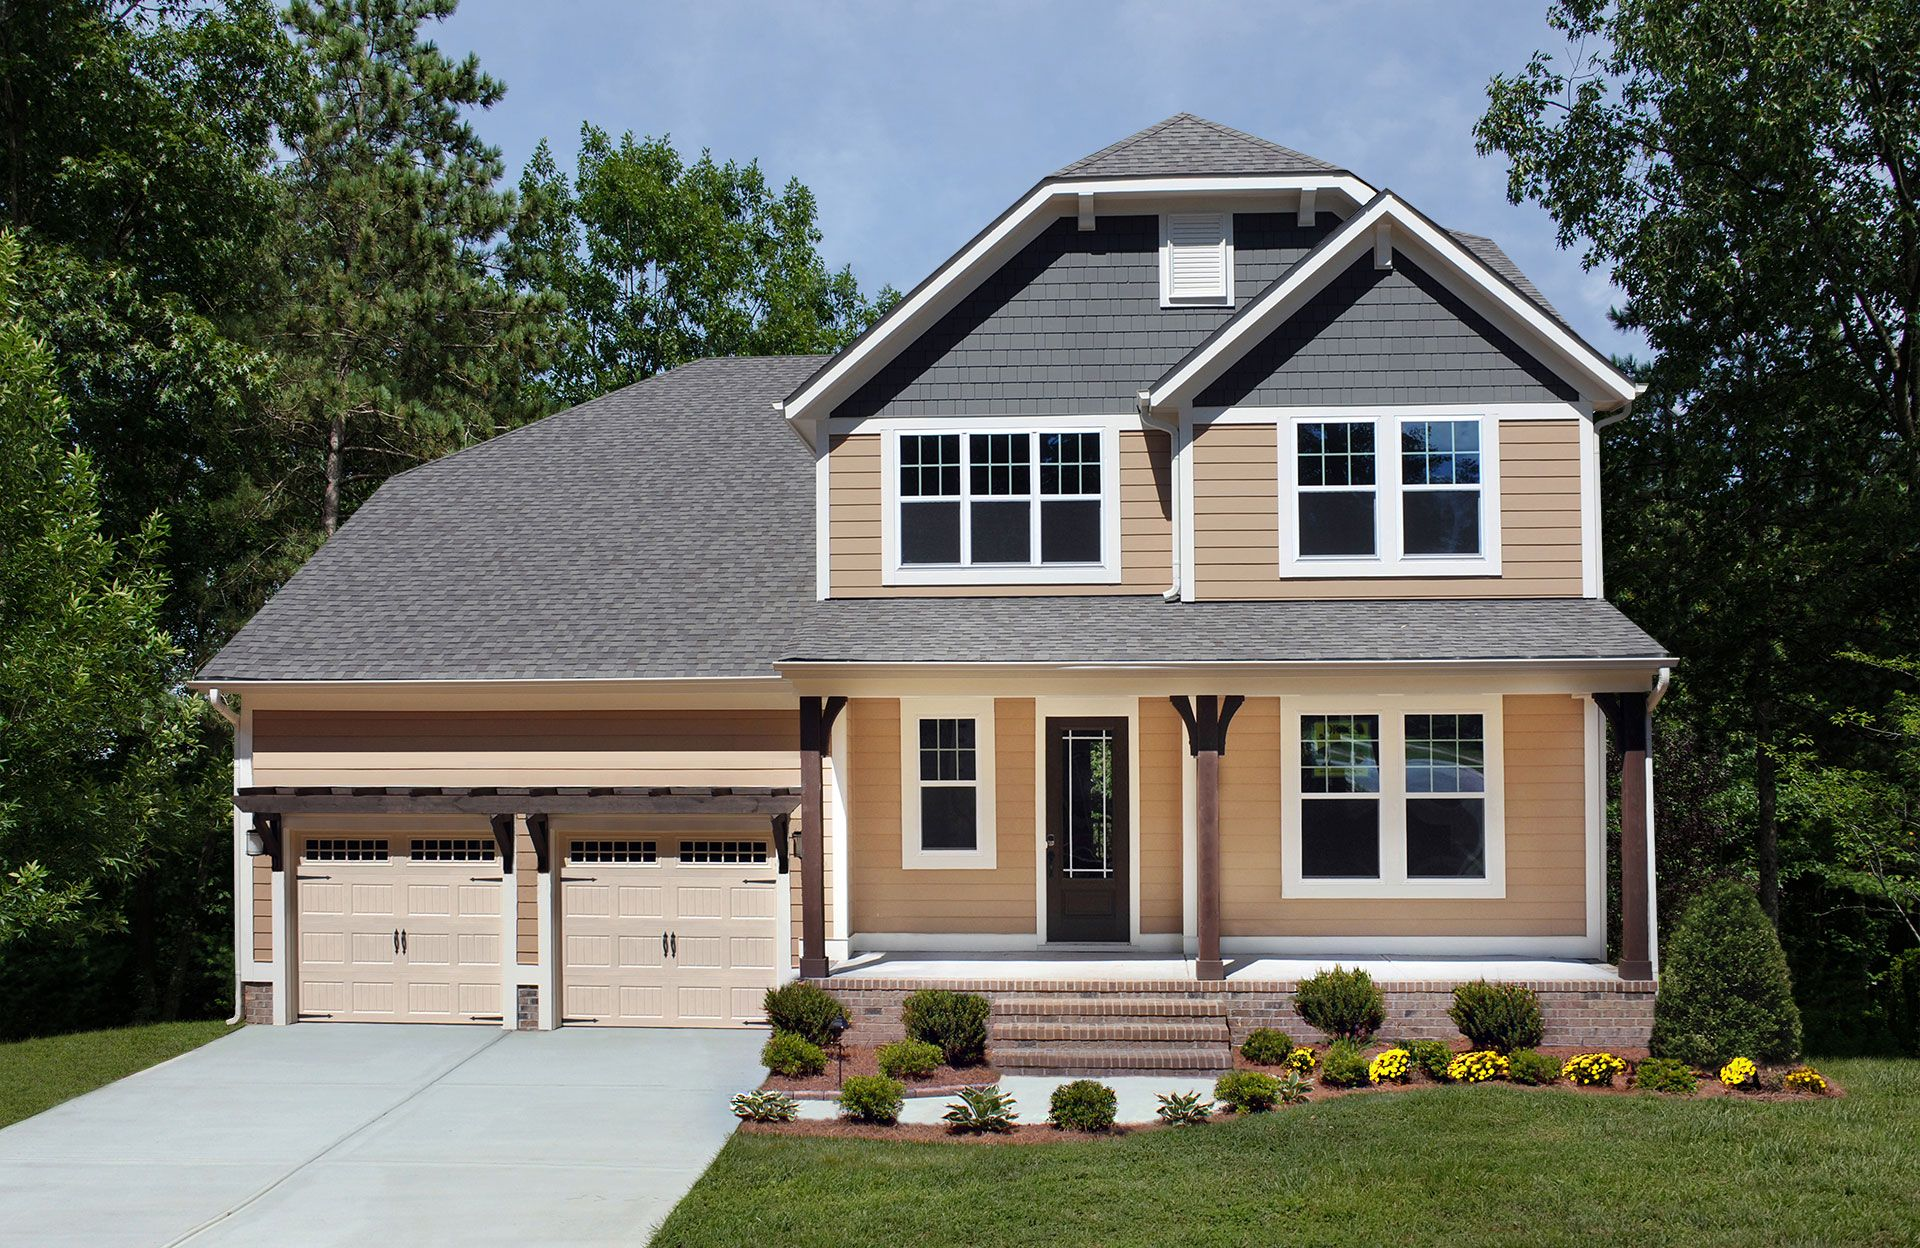 pleasant green woods new homes in durham nc by drees homes new homes community by drees homes